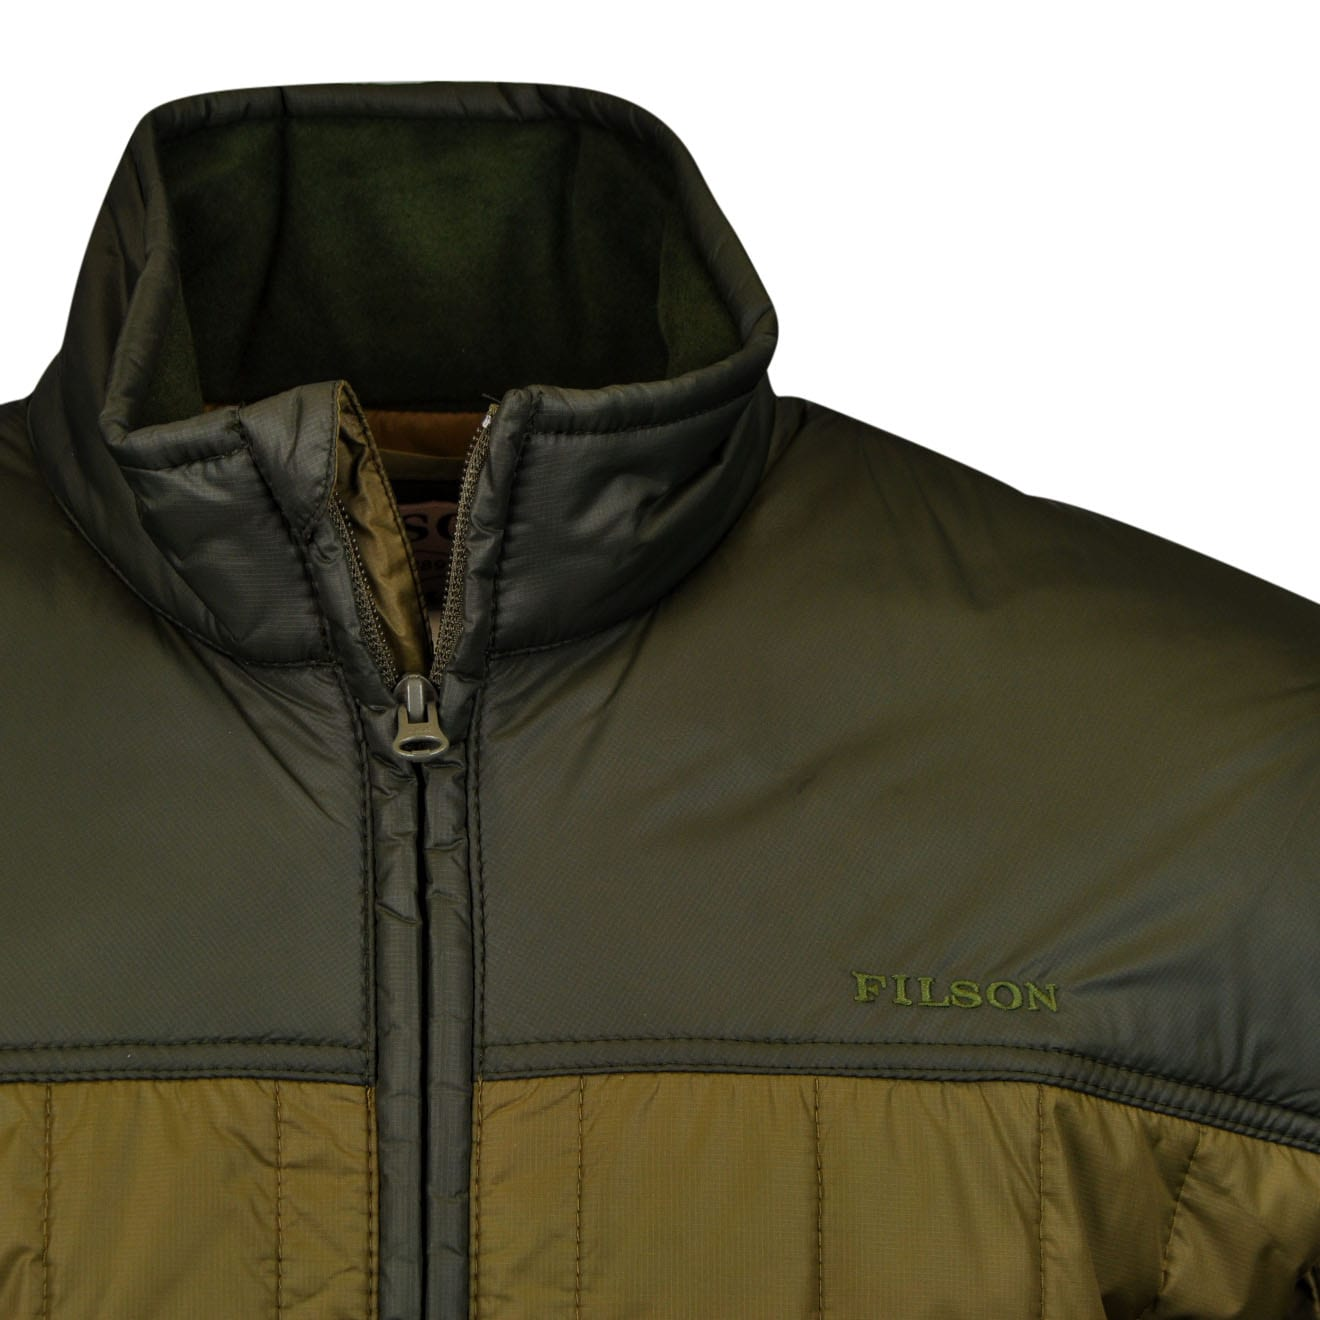 Filson Ultra Light Quilted Jacket Olive The Sporting Lodge